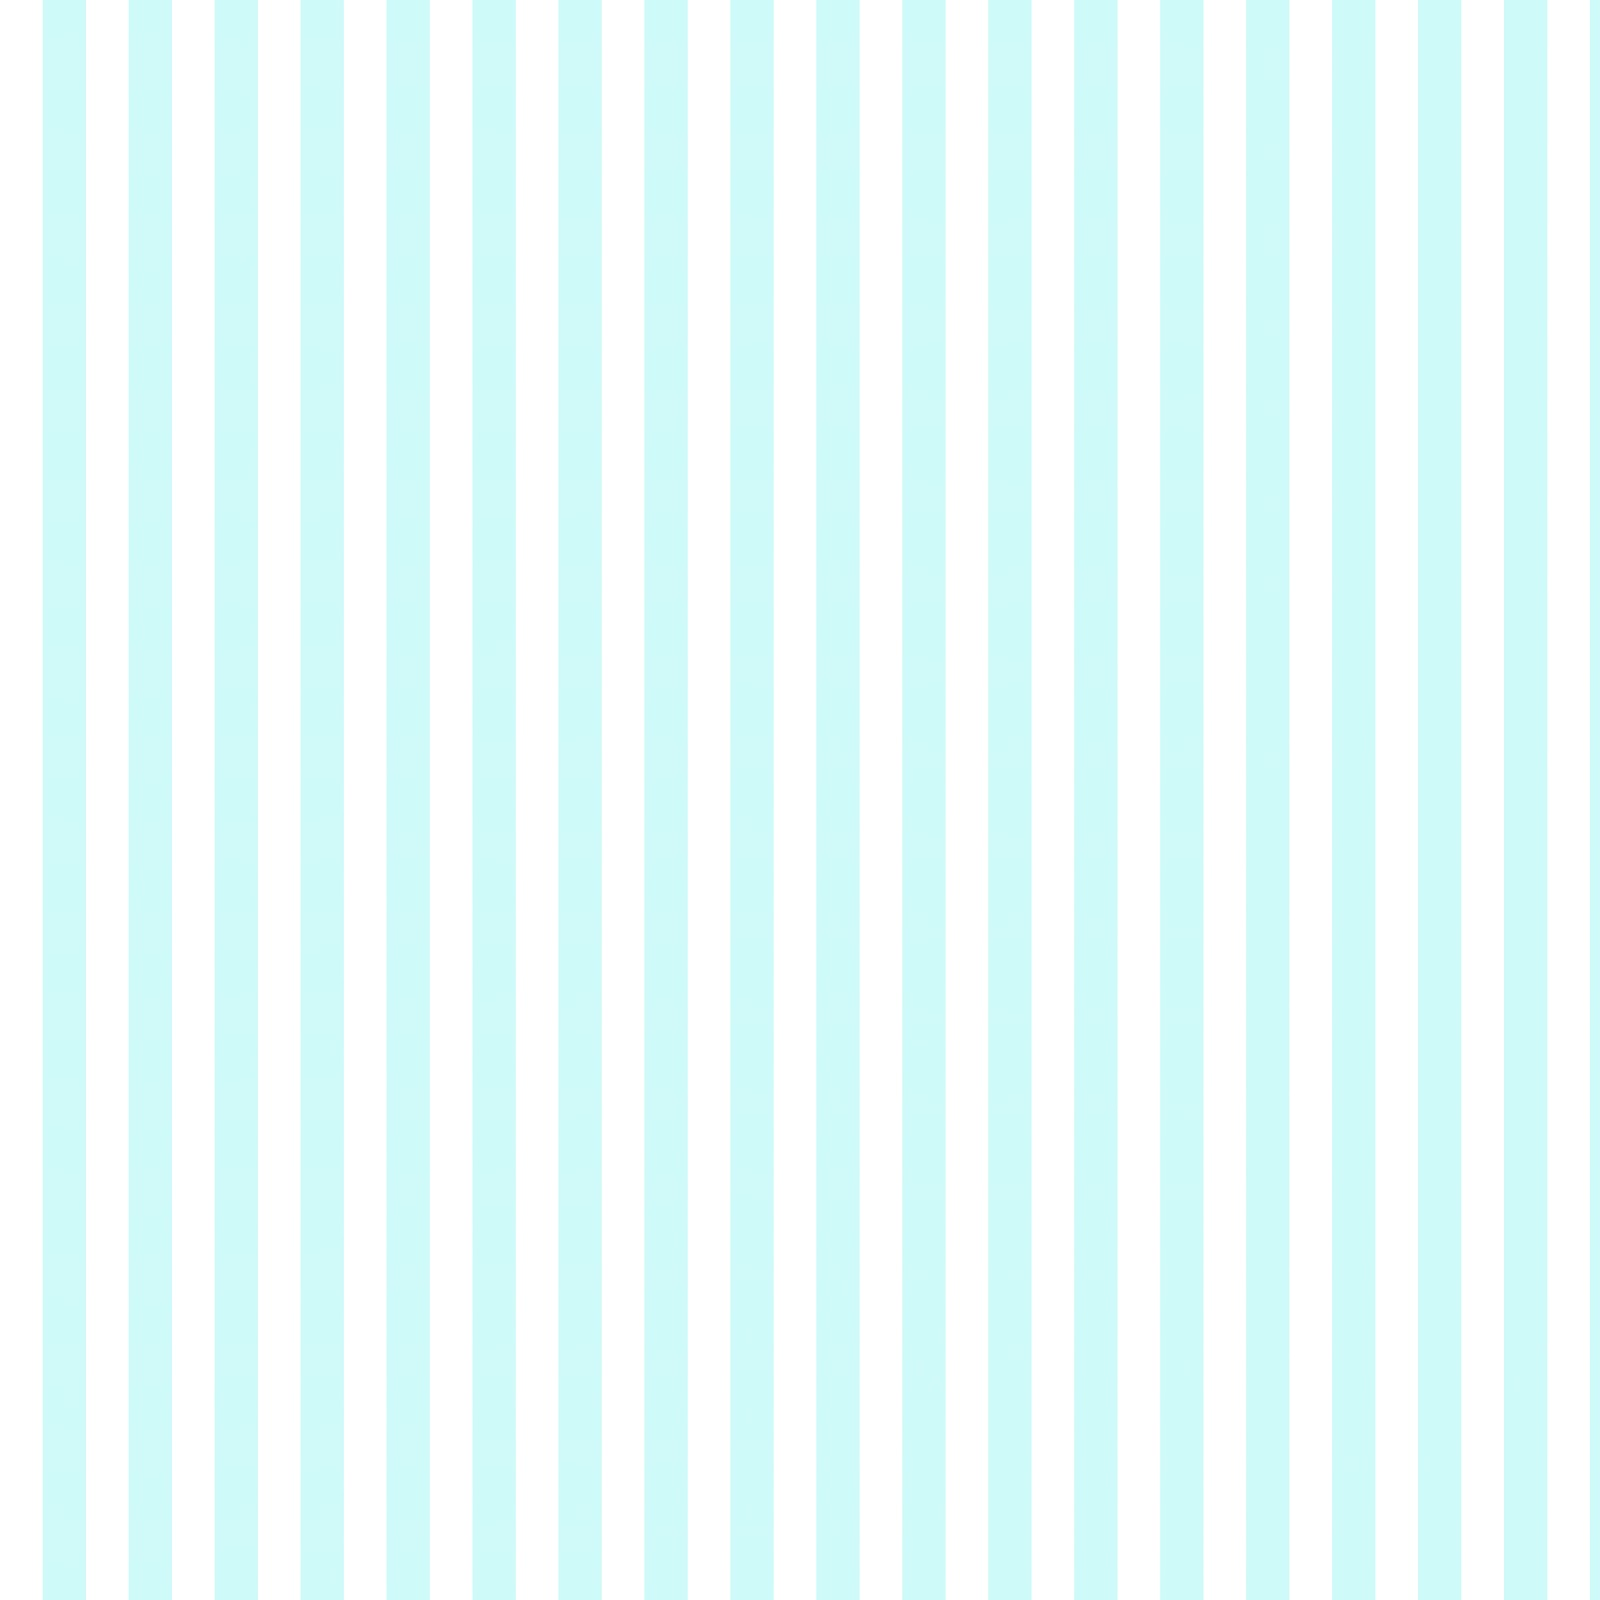 the gallery for gt baby blue background stripes